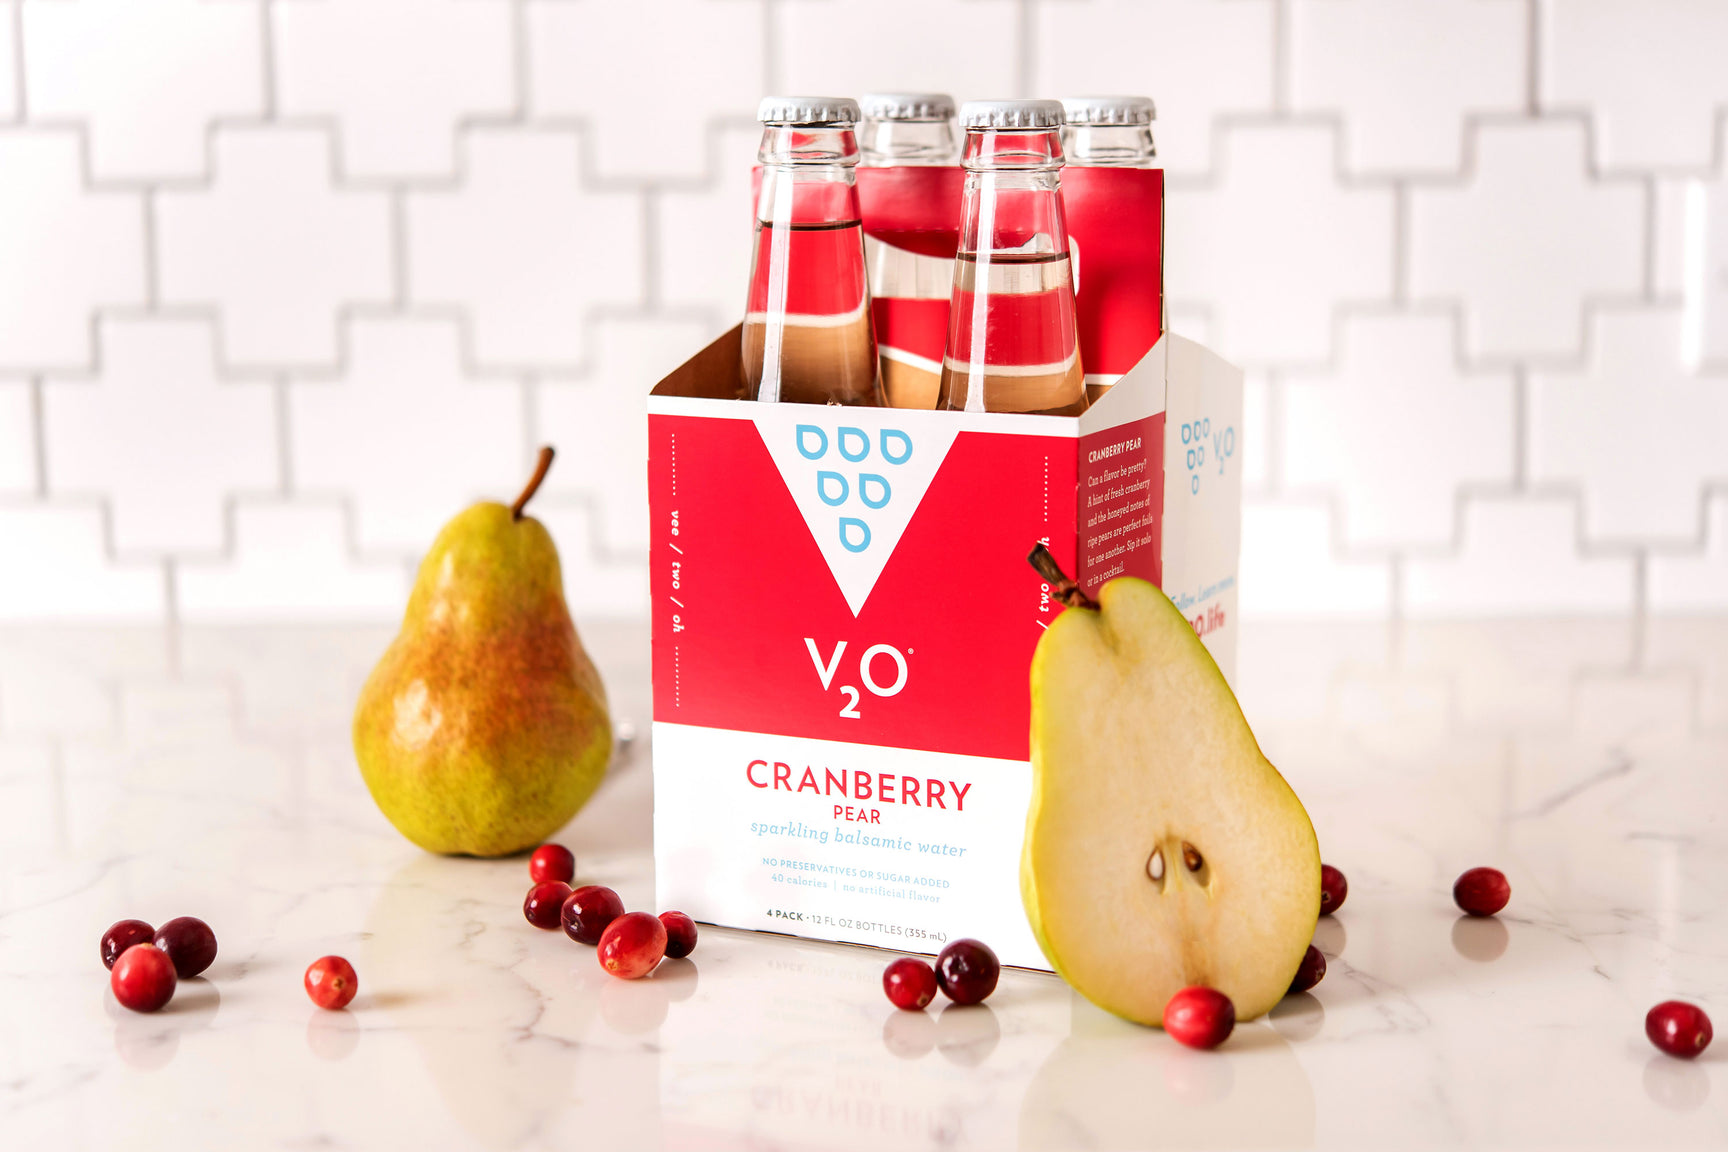 V20 Cranberry Pear with pears